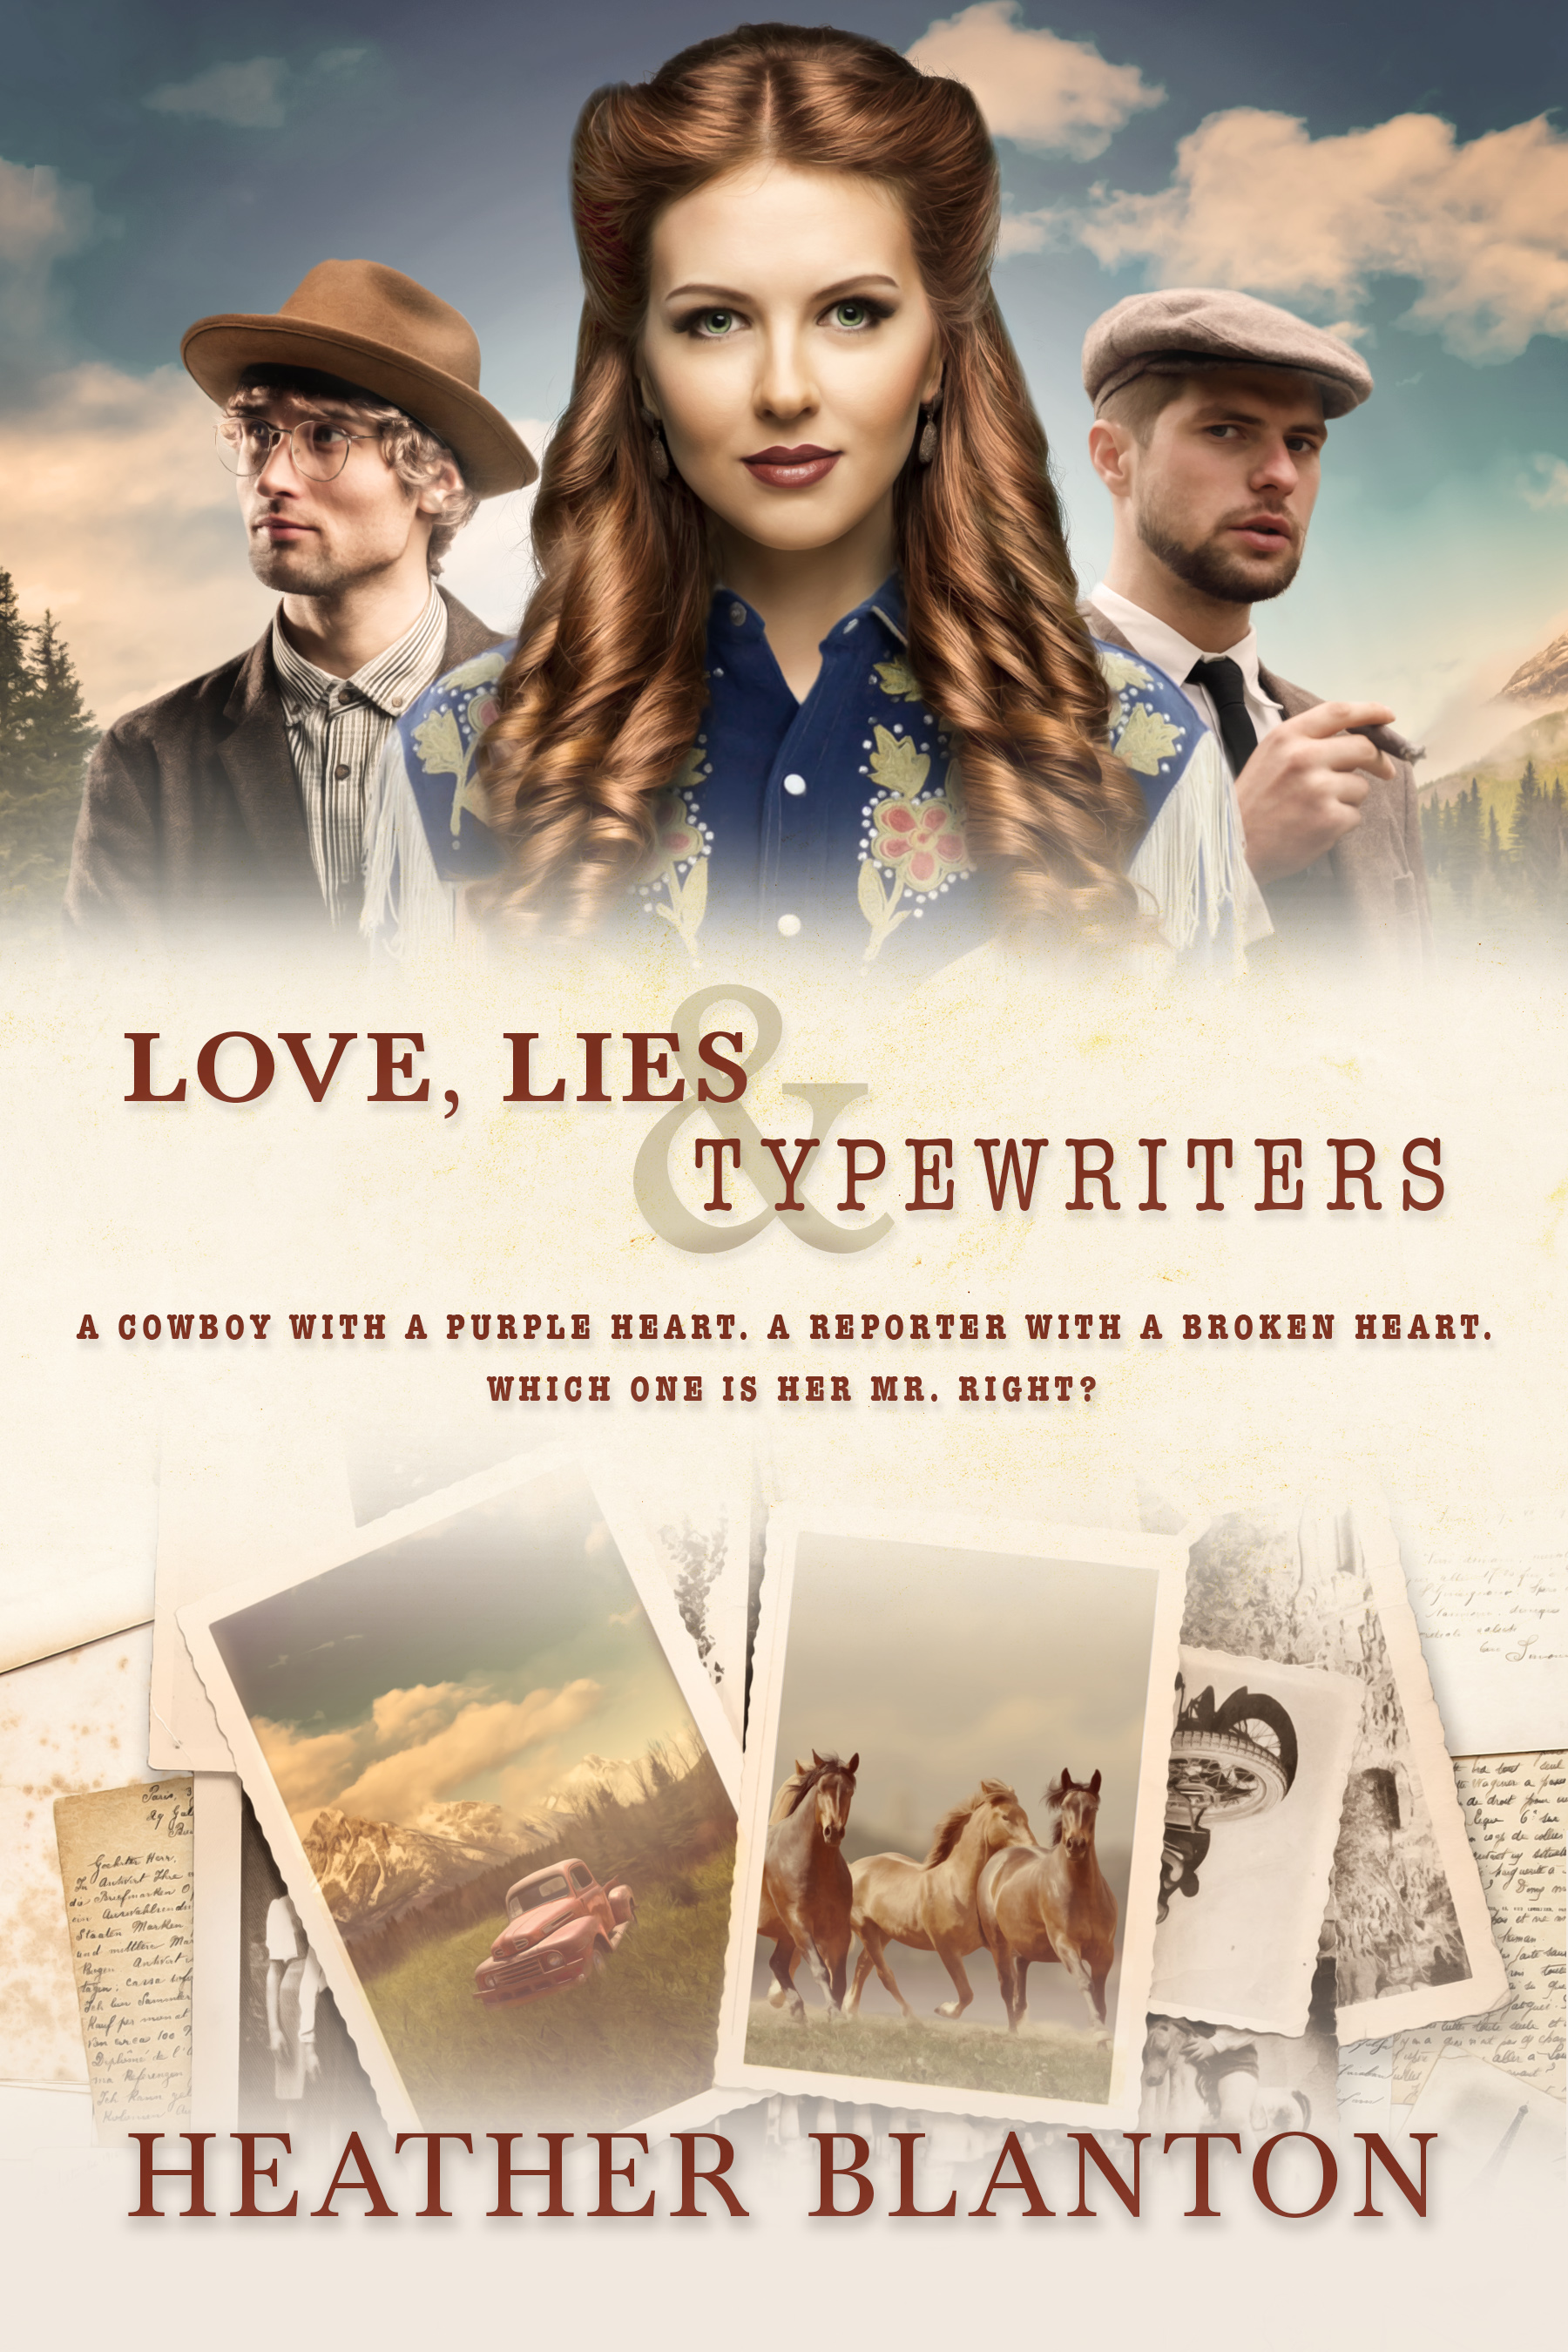 Heather_Blanton_2018_Love_Lies_Typewriters_EBOOK_FINAL